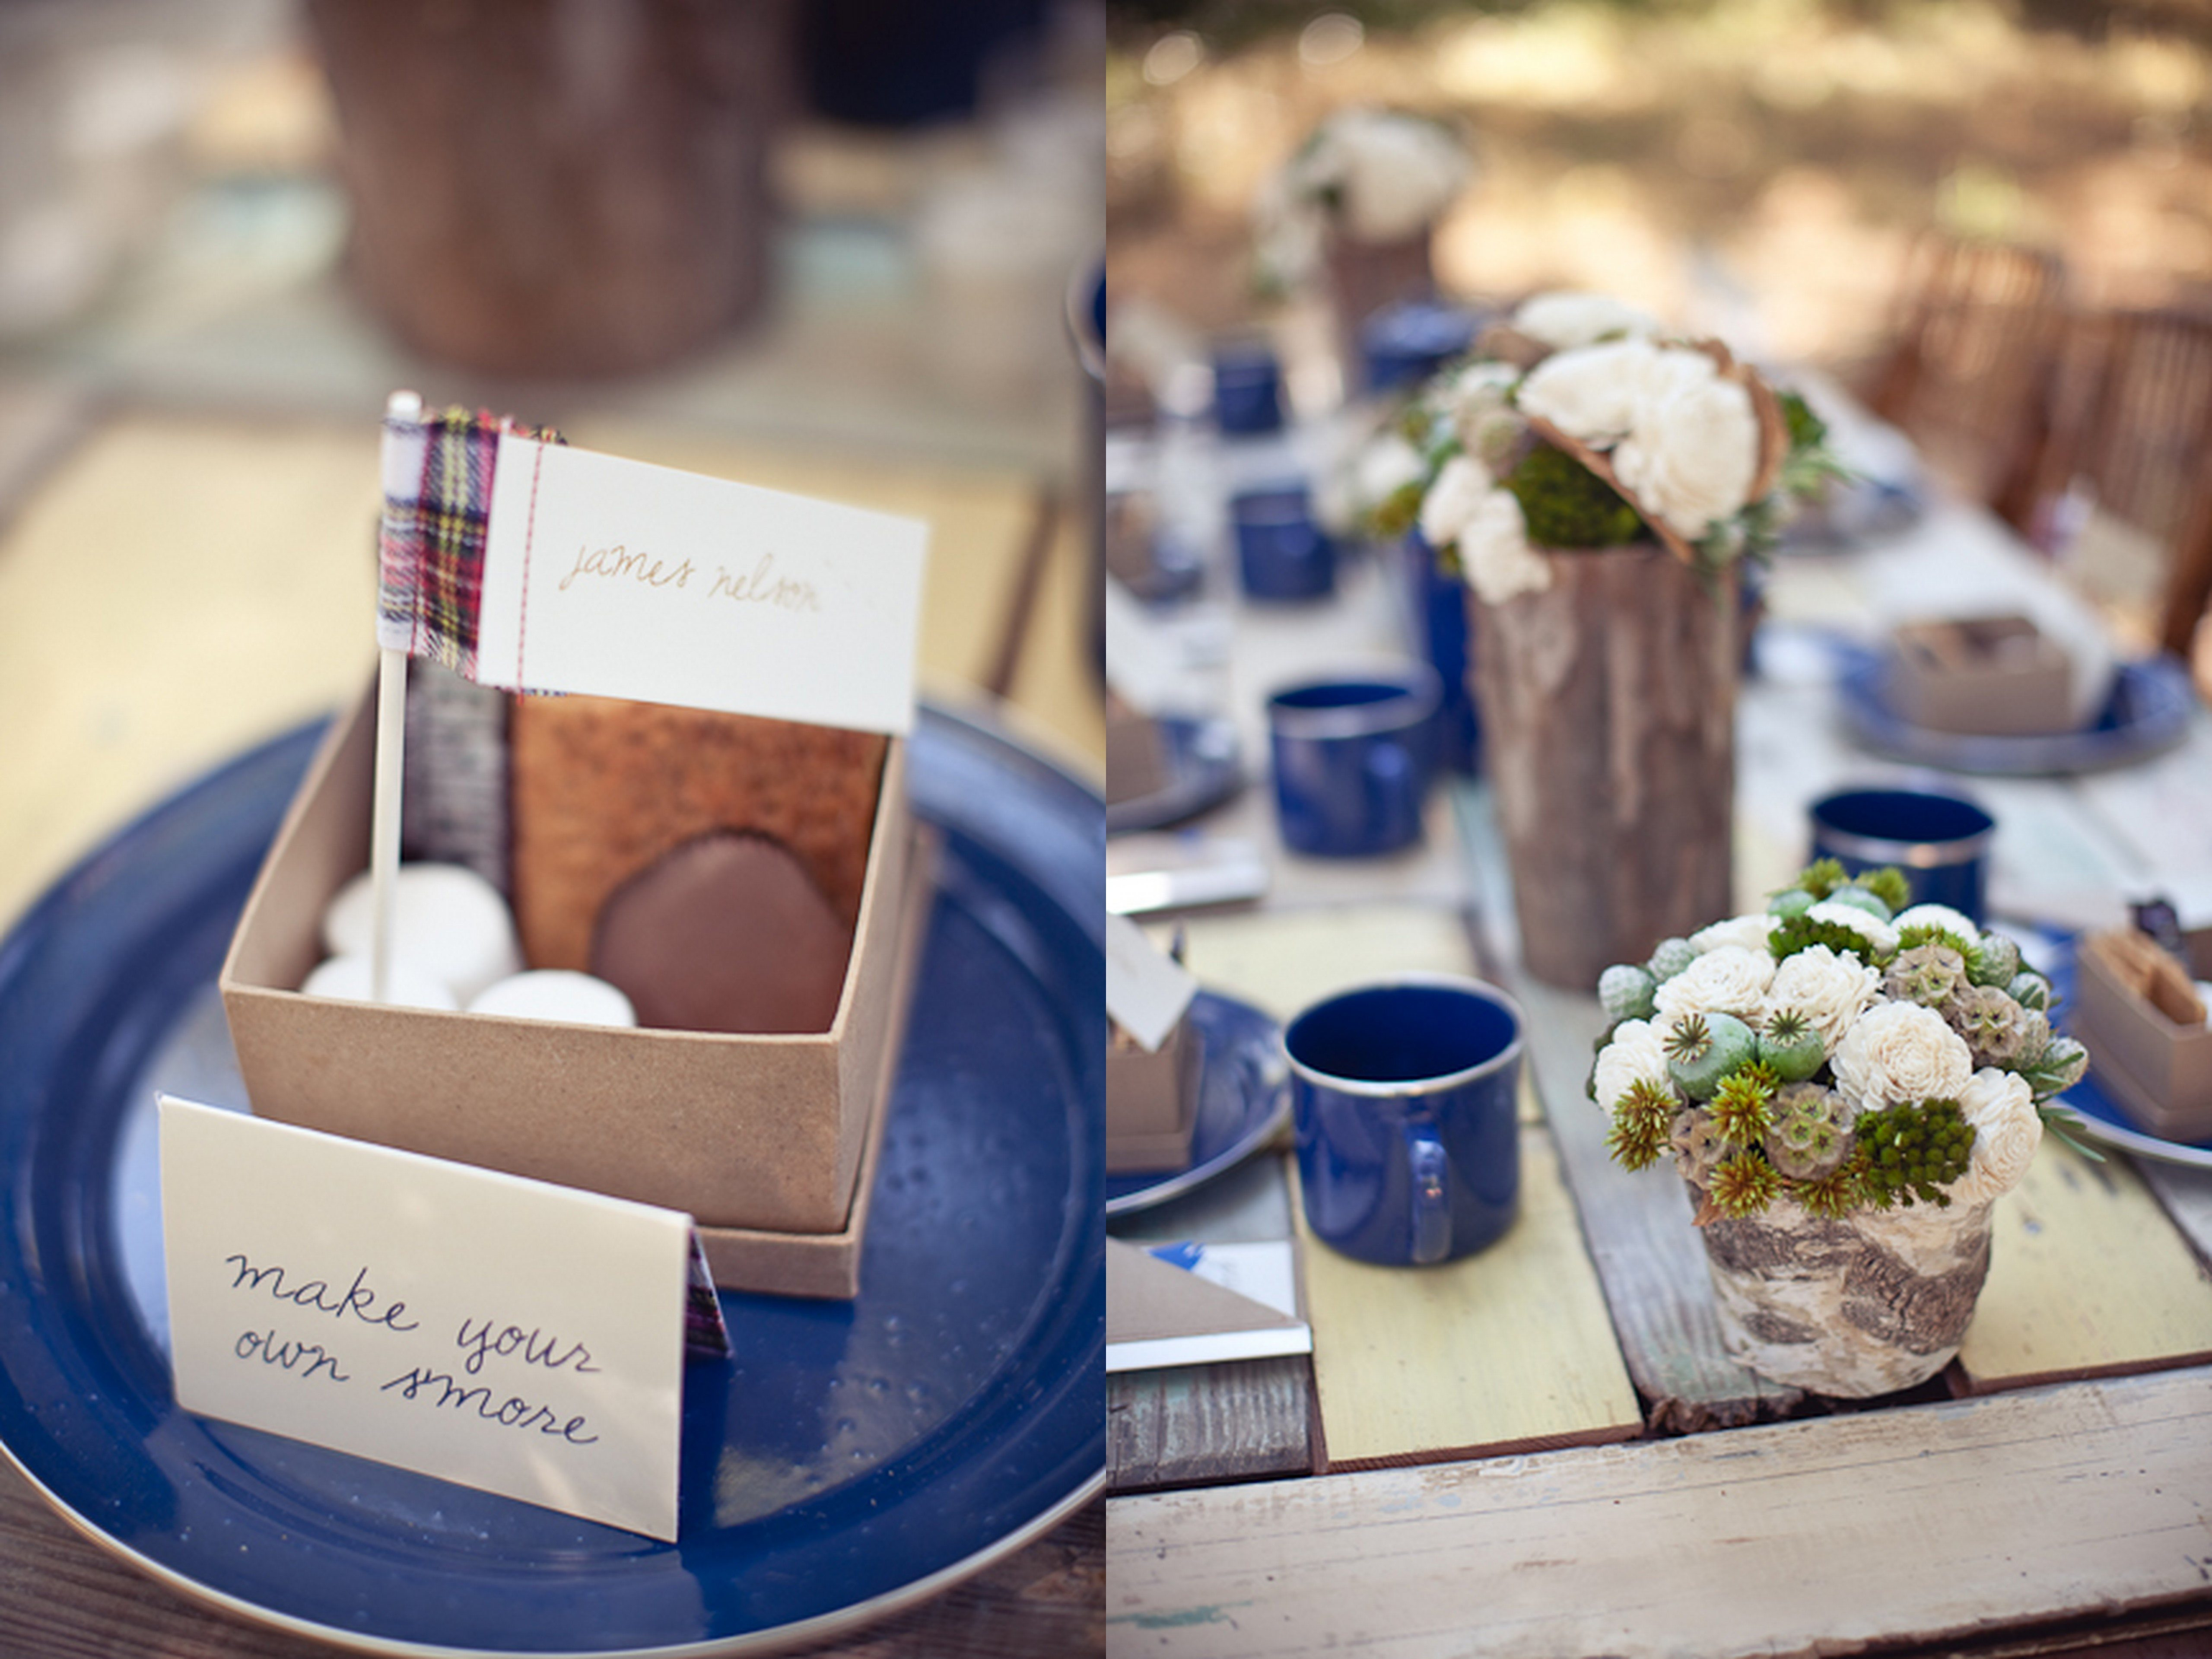 Camping Themed Rustic Outdoor Wedding Make Your Own Smores Favors